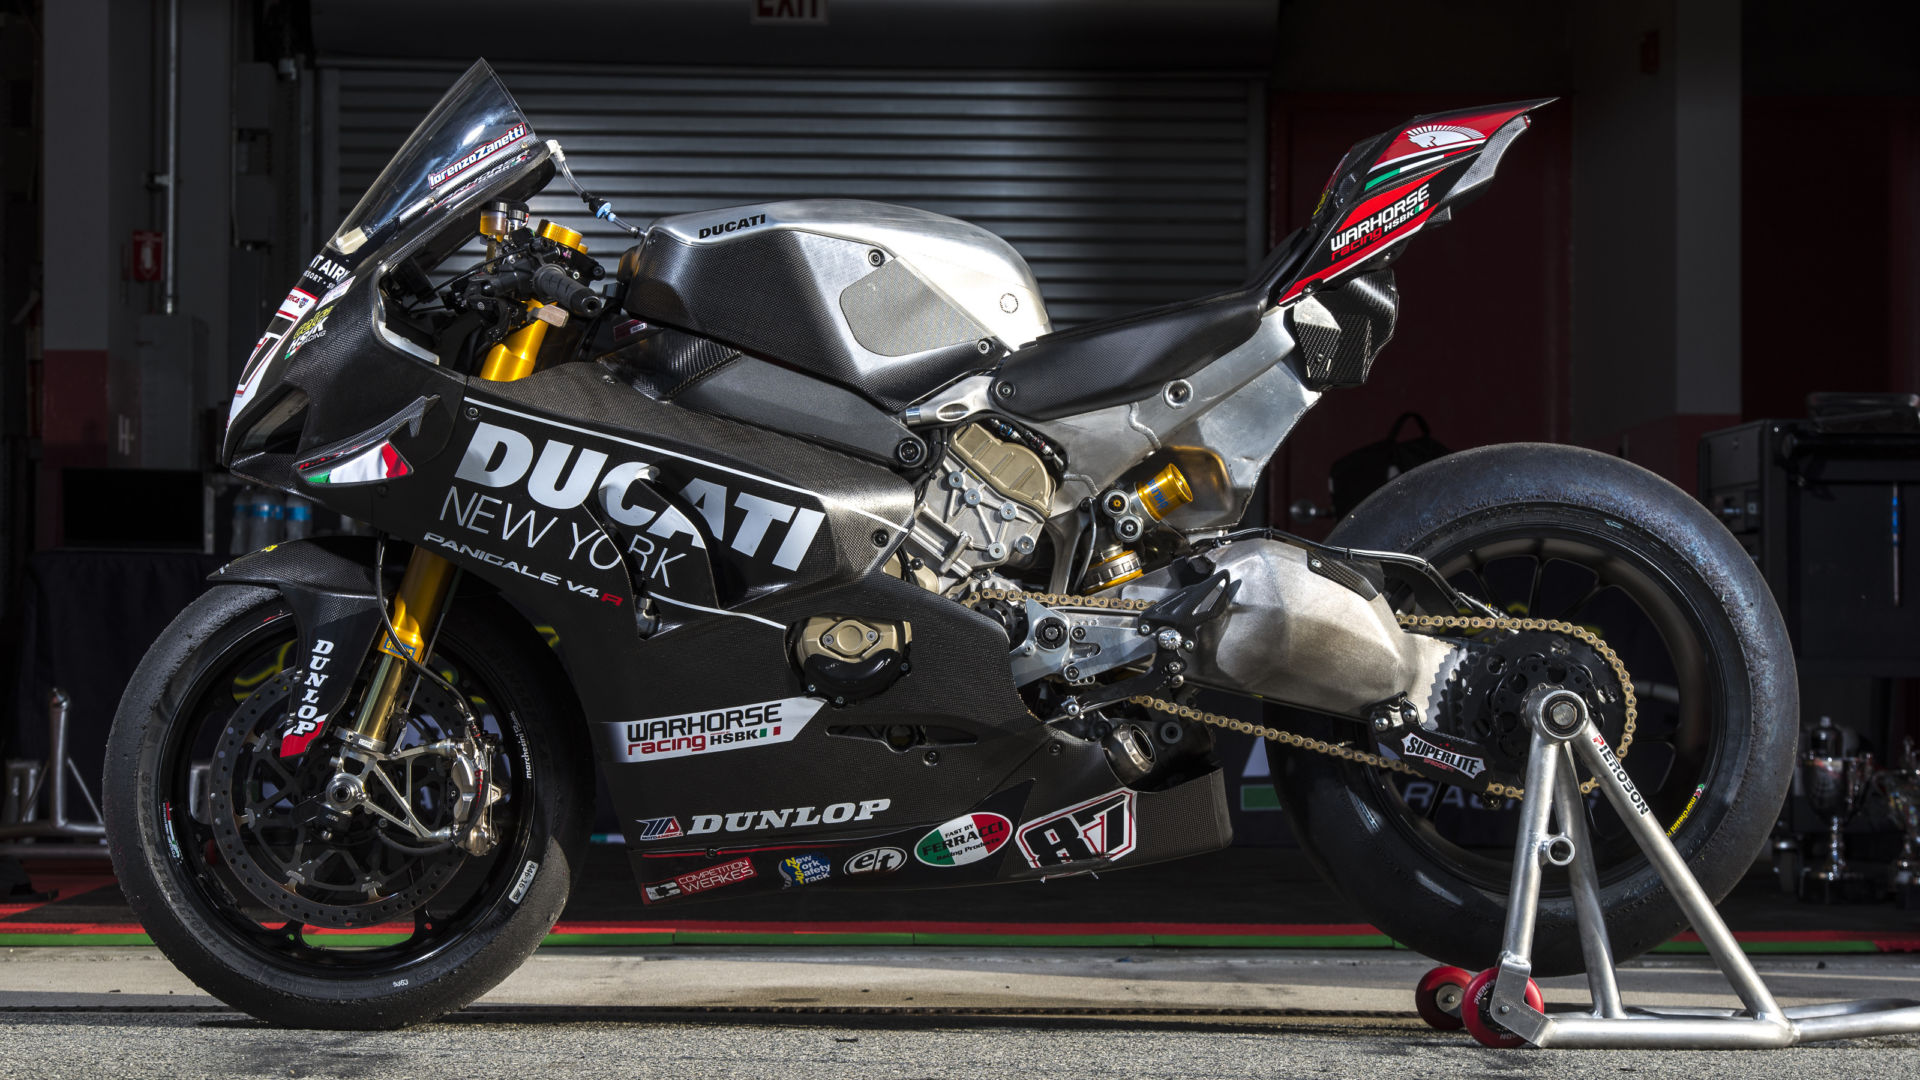 The Warhorse HSBK Racing Ducati New York Panigale V4 R Superbike. Photo courtesy Warhorse HSBK Racing Ducati New York